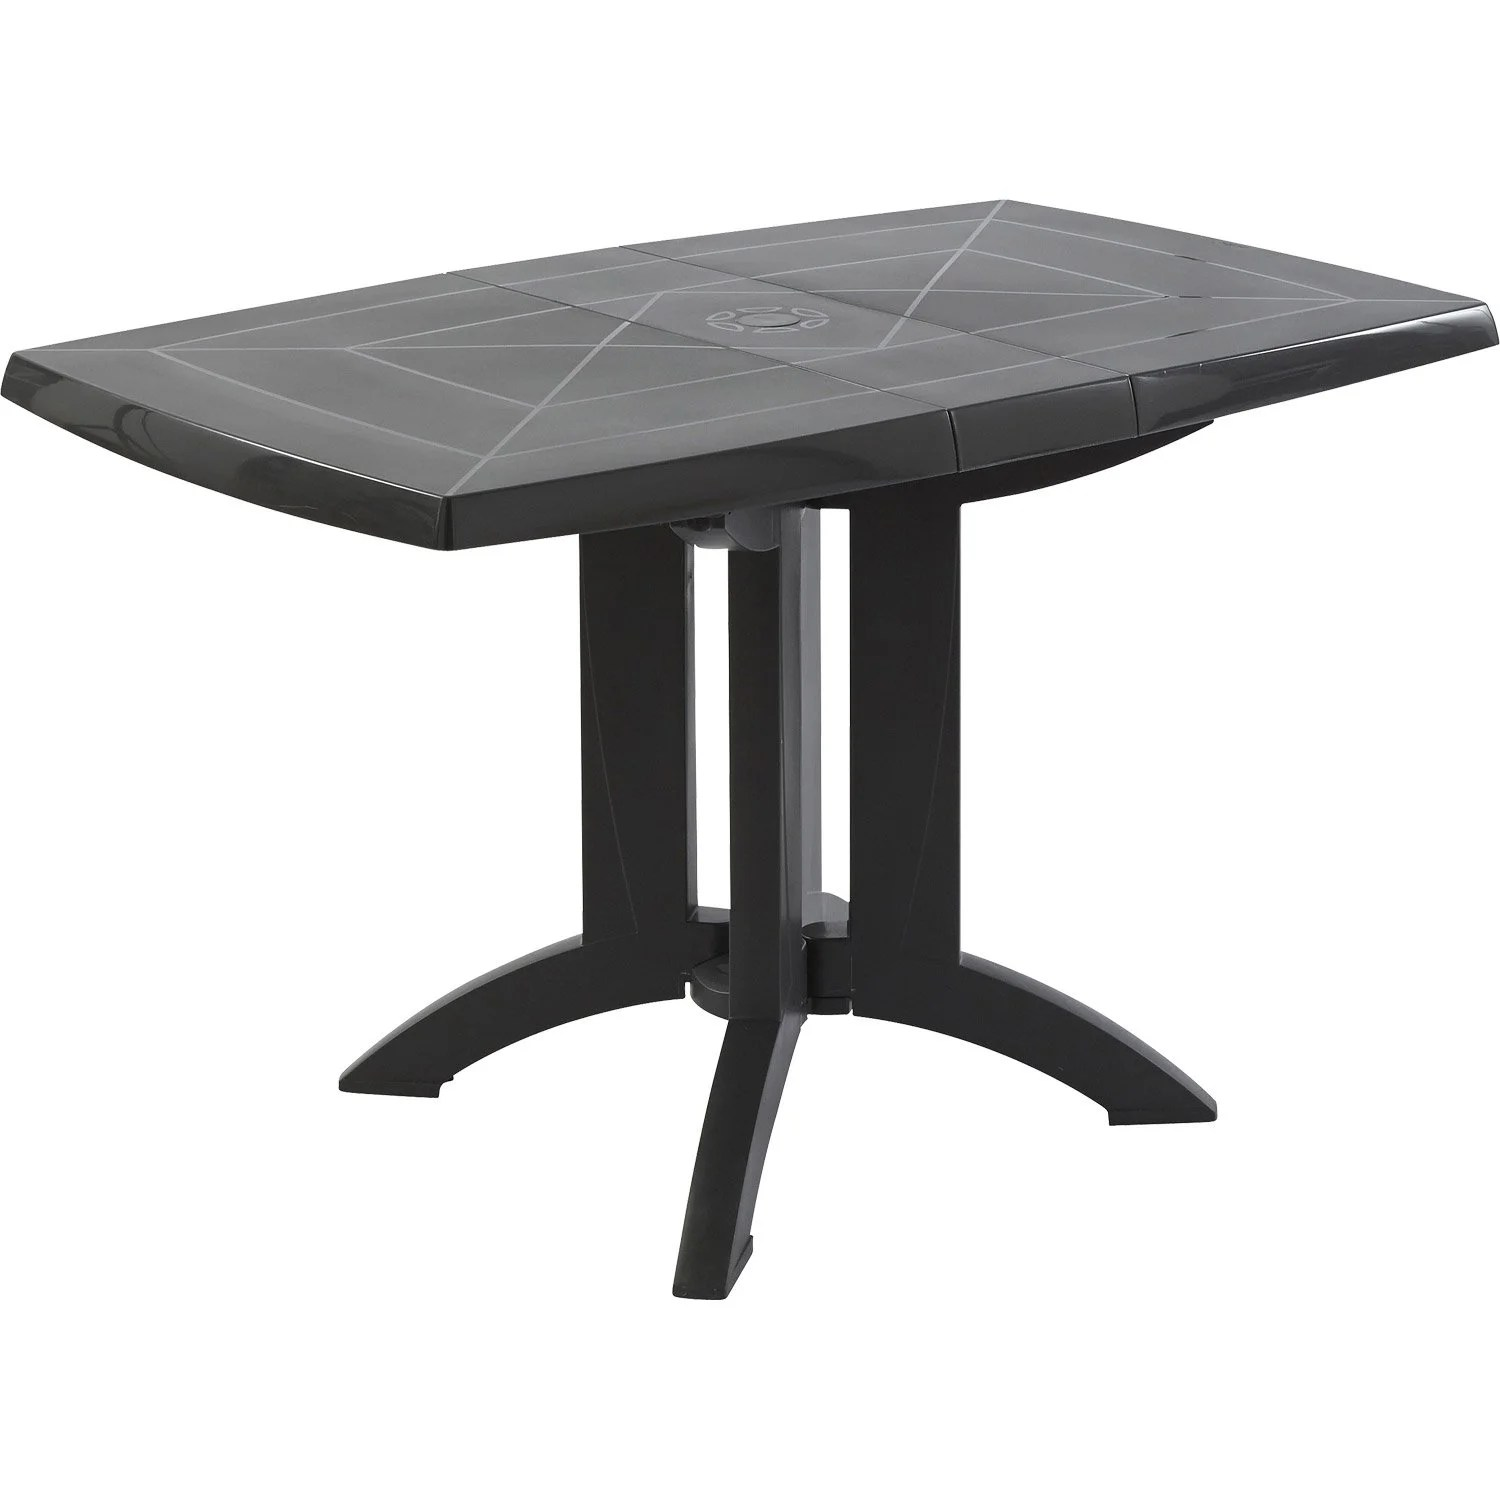 Table Jardin Verte Plastique Table De Jardin Grosfillex Véga Rectangulaire Anthracite 4